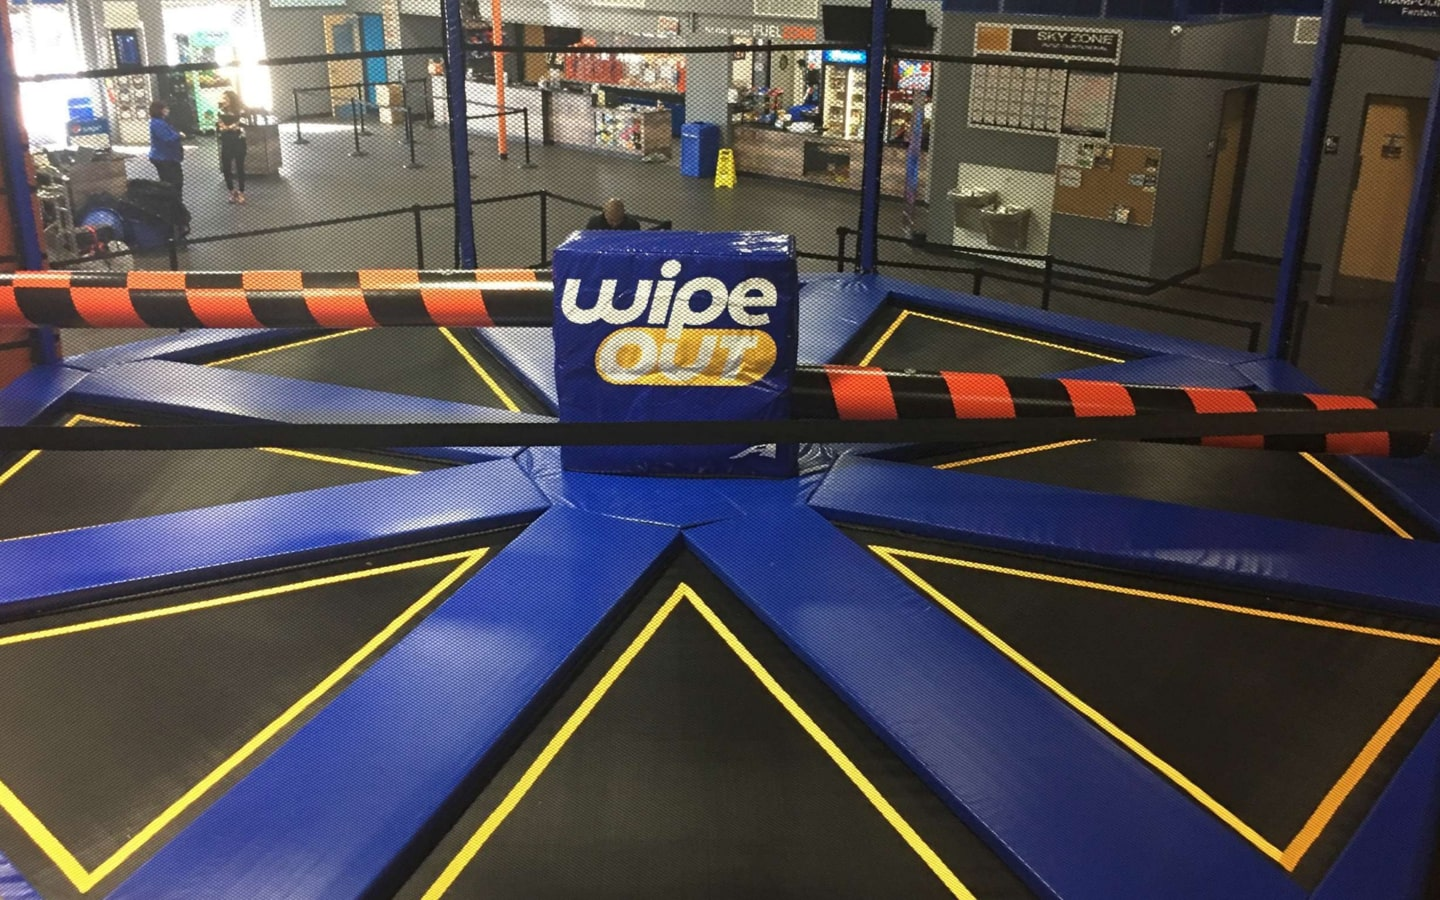 Sky Zone Dubai in Ibn Battuta Mall: Attractions, Prices.